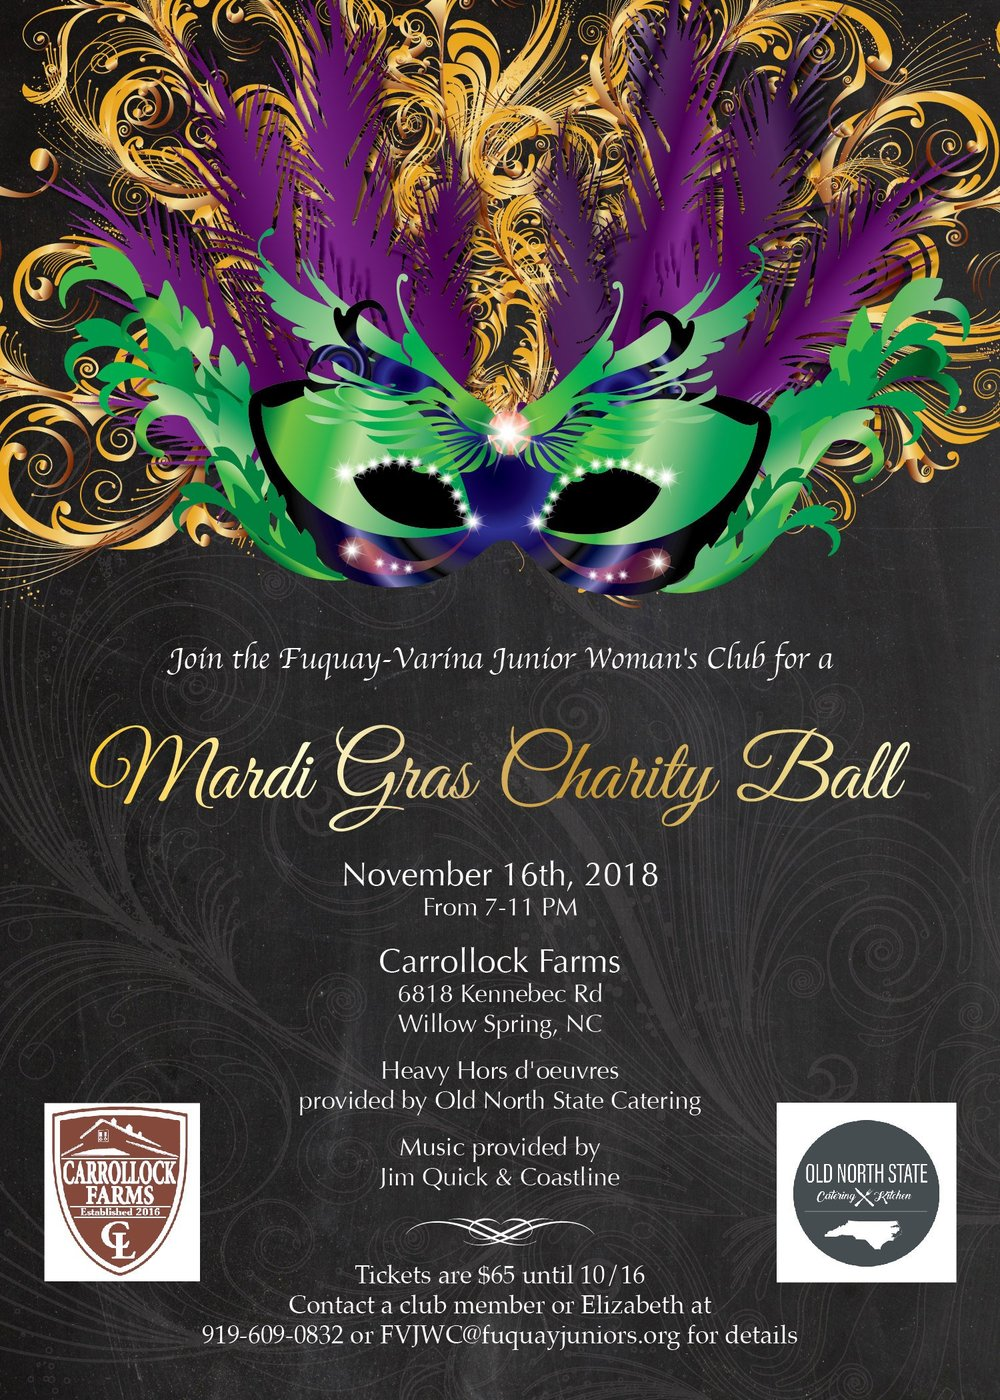 - The 2018 Fuquay-Varina Junior Woman's Club 29th Annual Charity Ball will be held November 16, 2018 at Carrollock Farms in Willow Spring, NC.Entertainment provided by Jim Quick and the Coastline Band!To purchase a ticket, contact any FVJWC Club Member or contact Elizabeth Edwards or Heather Whittington at fvjwc@fuquayjuniors.org .**Early Bird pricing of $65 has been extended until November 2nd! Don't miss out!**